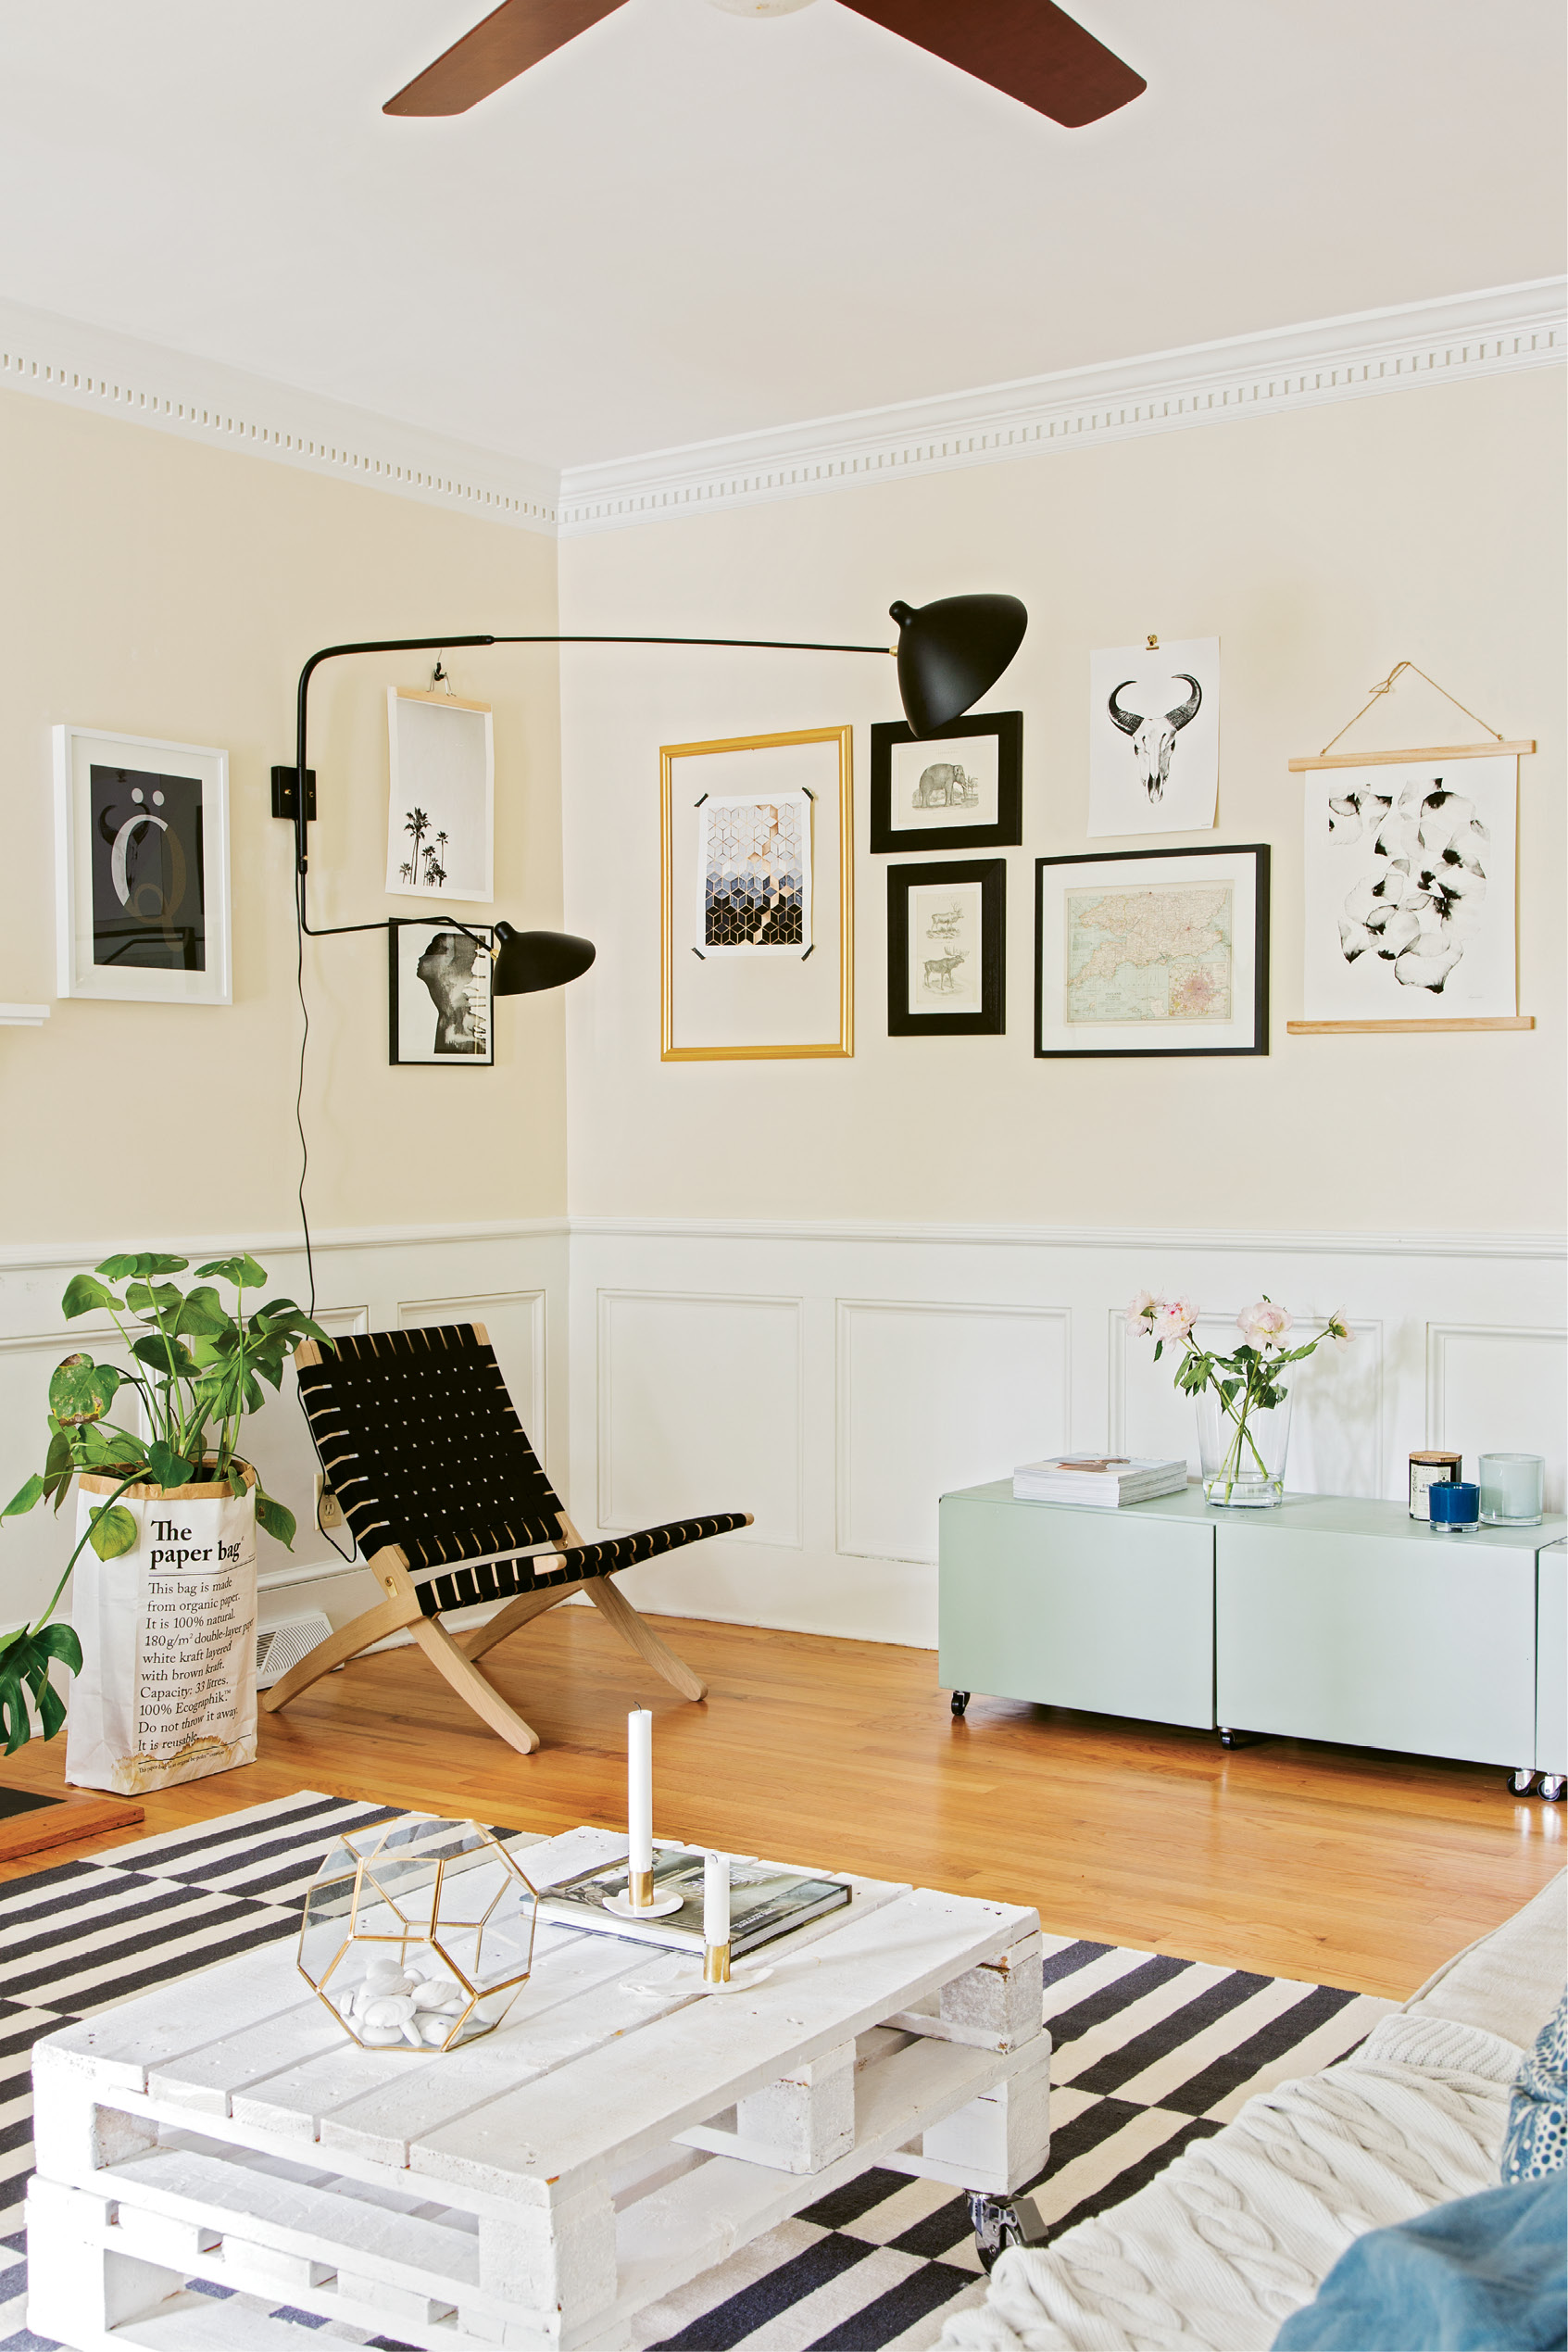 NATIVE STYLE: Therese filled the living room with natural materials, pastel and monochrome color schemes, and lots of plants—all hallmarks of the Swedish design aesthetic. (Opposite top) Gallery walls are found throughout the house; a black-and-white palette connects them all, making the spaces feel cohesive.